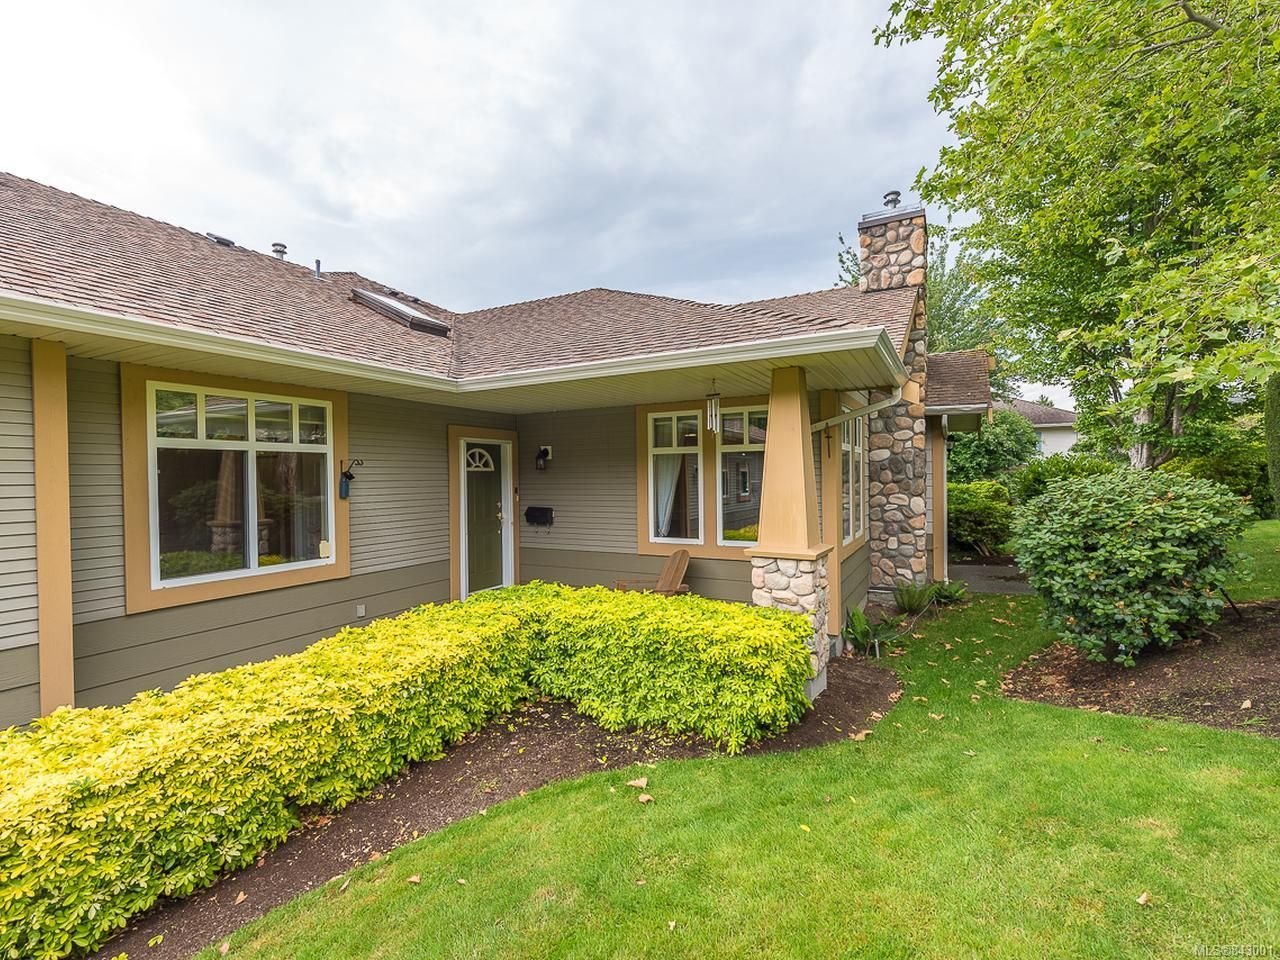 Main Photo: 16 1220 Guthrie Rd in COMOX: CV Comox (Town of) Row/Townhouse for sale (Comox Valley)  : MLS®# 843001